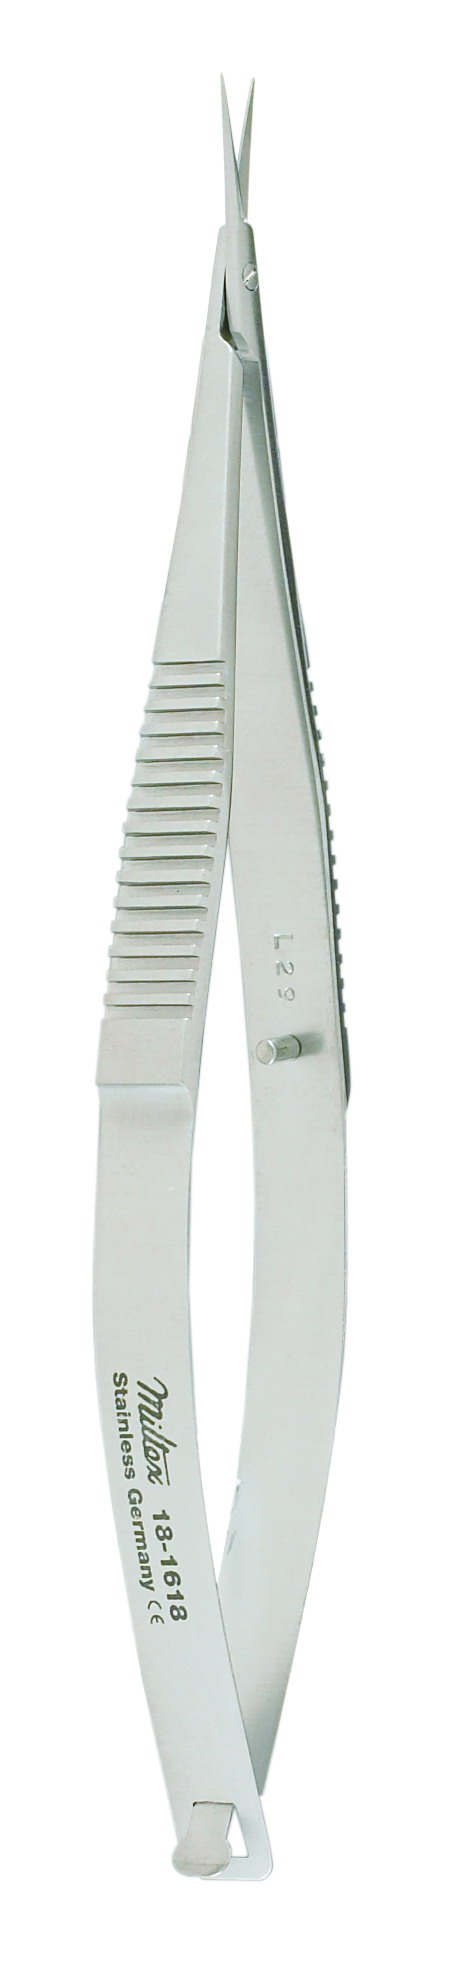 micro-iris-scissors-4-102-cm-straight-sharp-points-18-1618-miltex.jpg